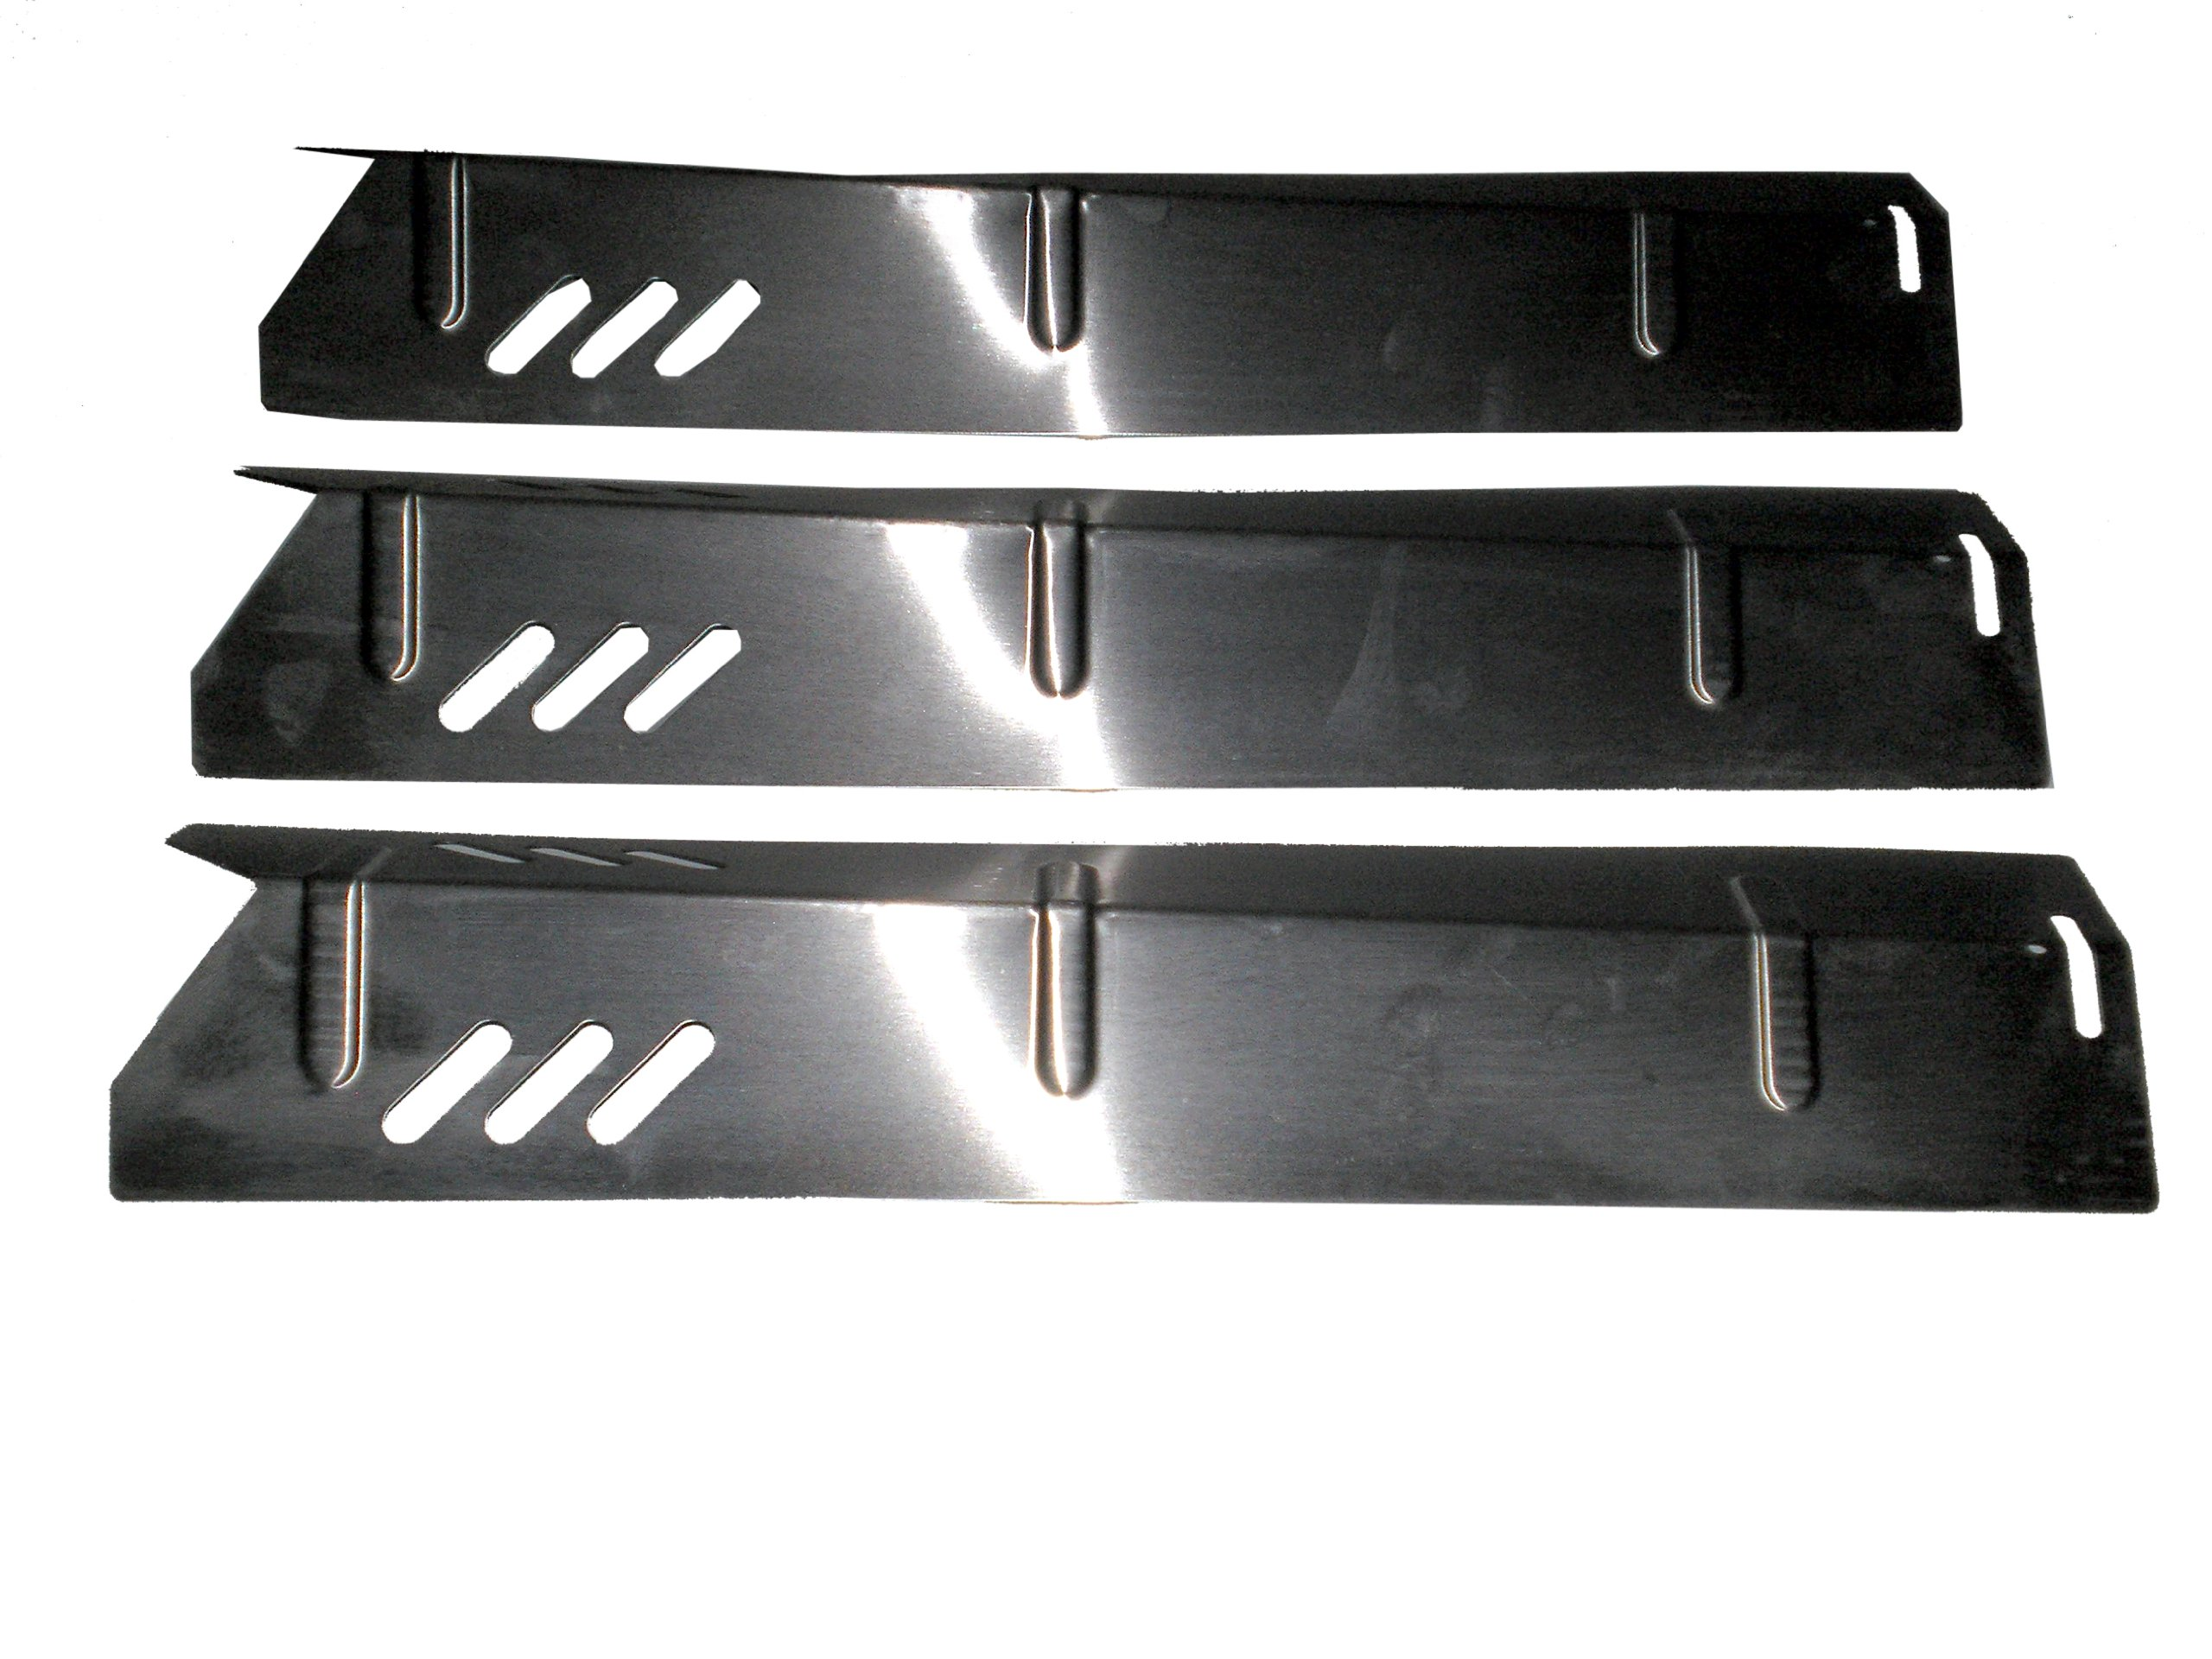 Set of 3 Heat Plates for Uniflame and Better Home and Gardens BBQ Grill GBC1273W, BH12-101-001-02